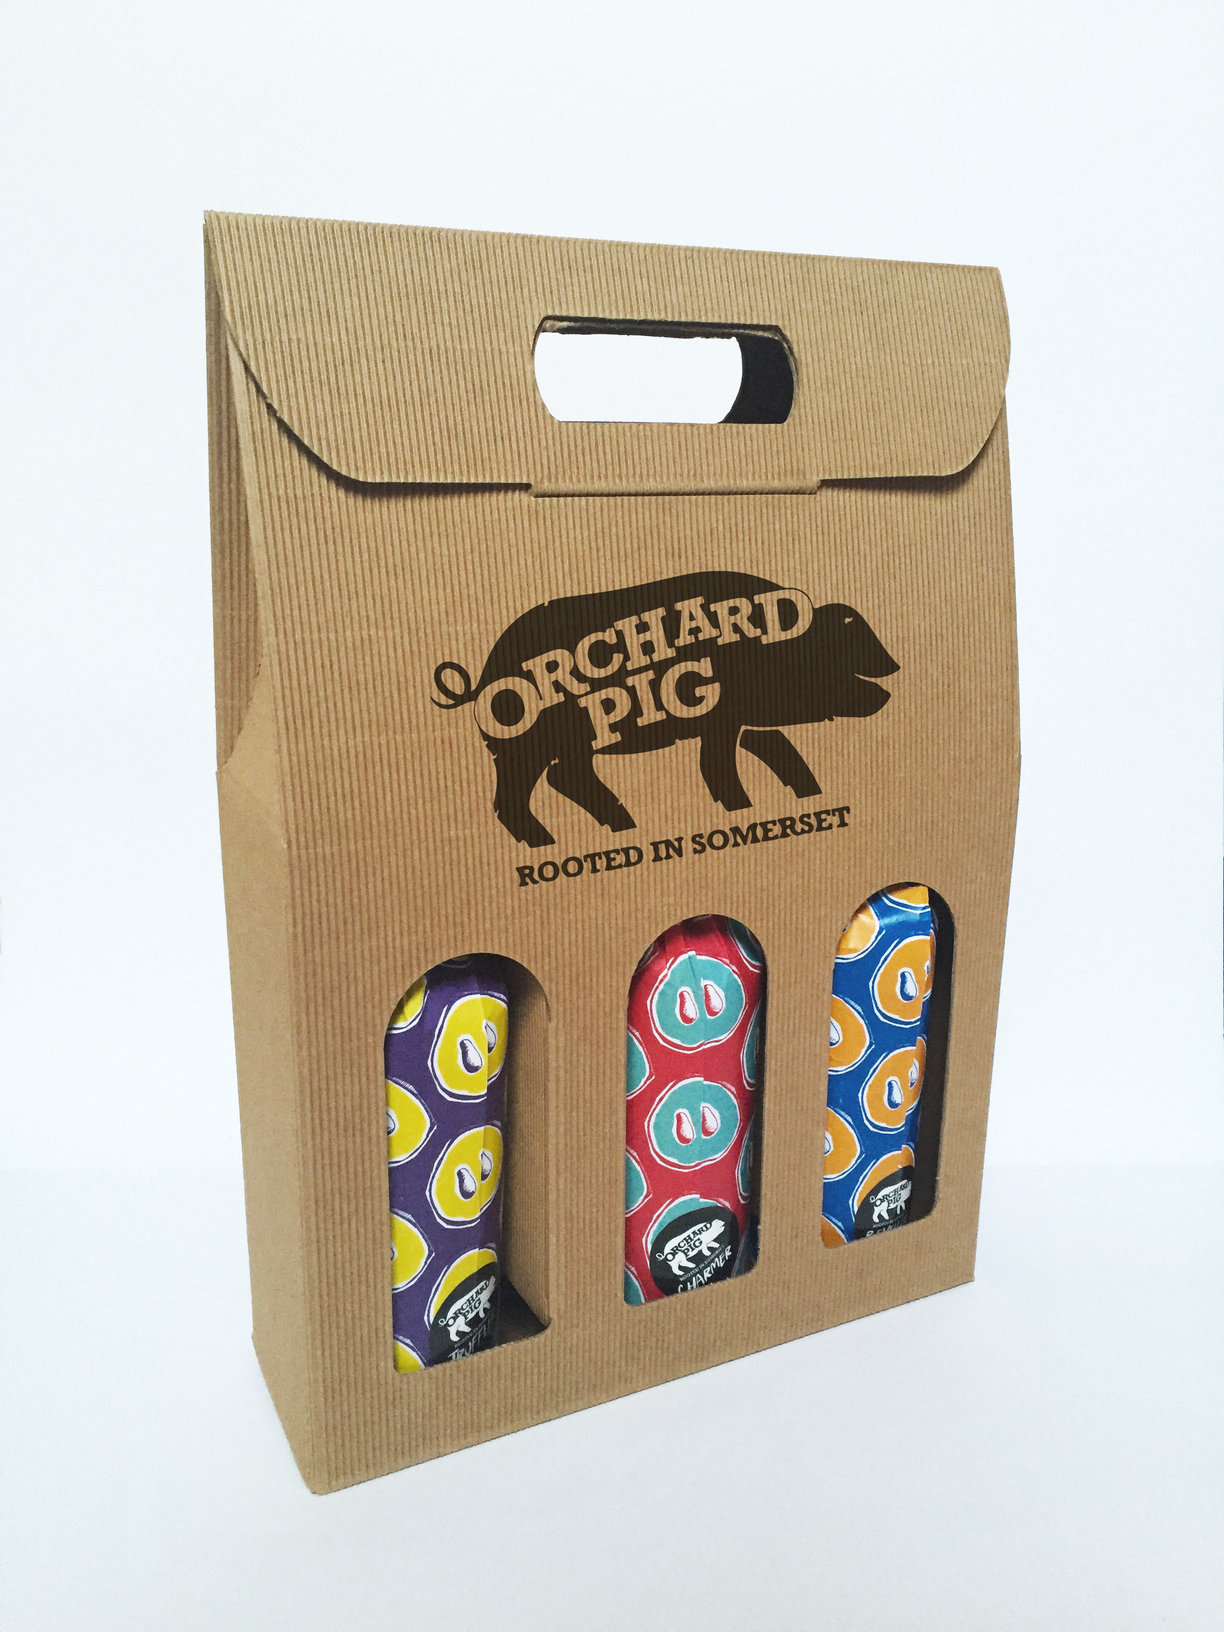 Orchard Pig 05